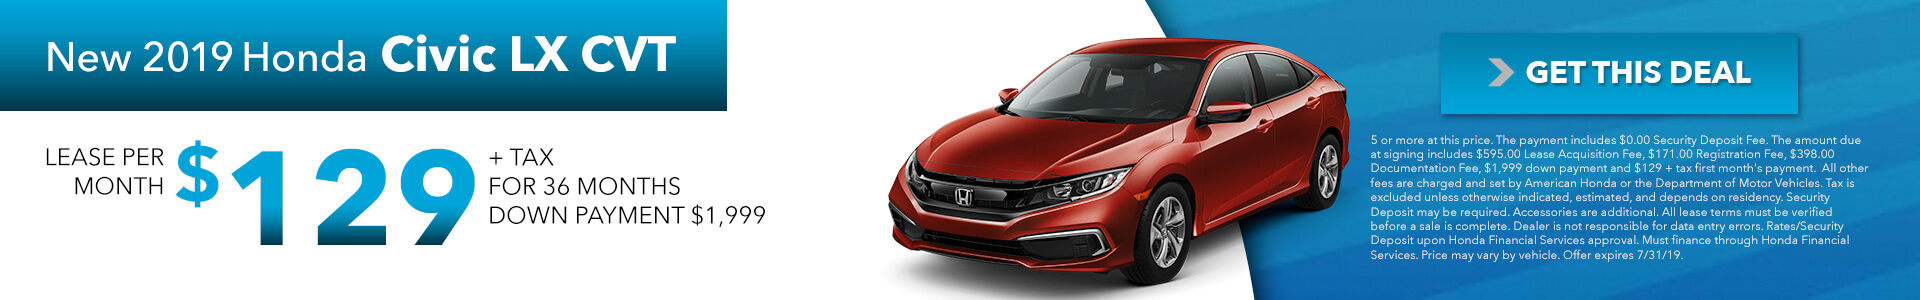 2019 Honda Civic LX CVT $129 per month